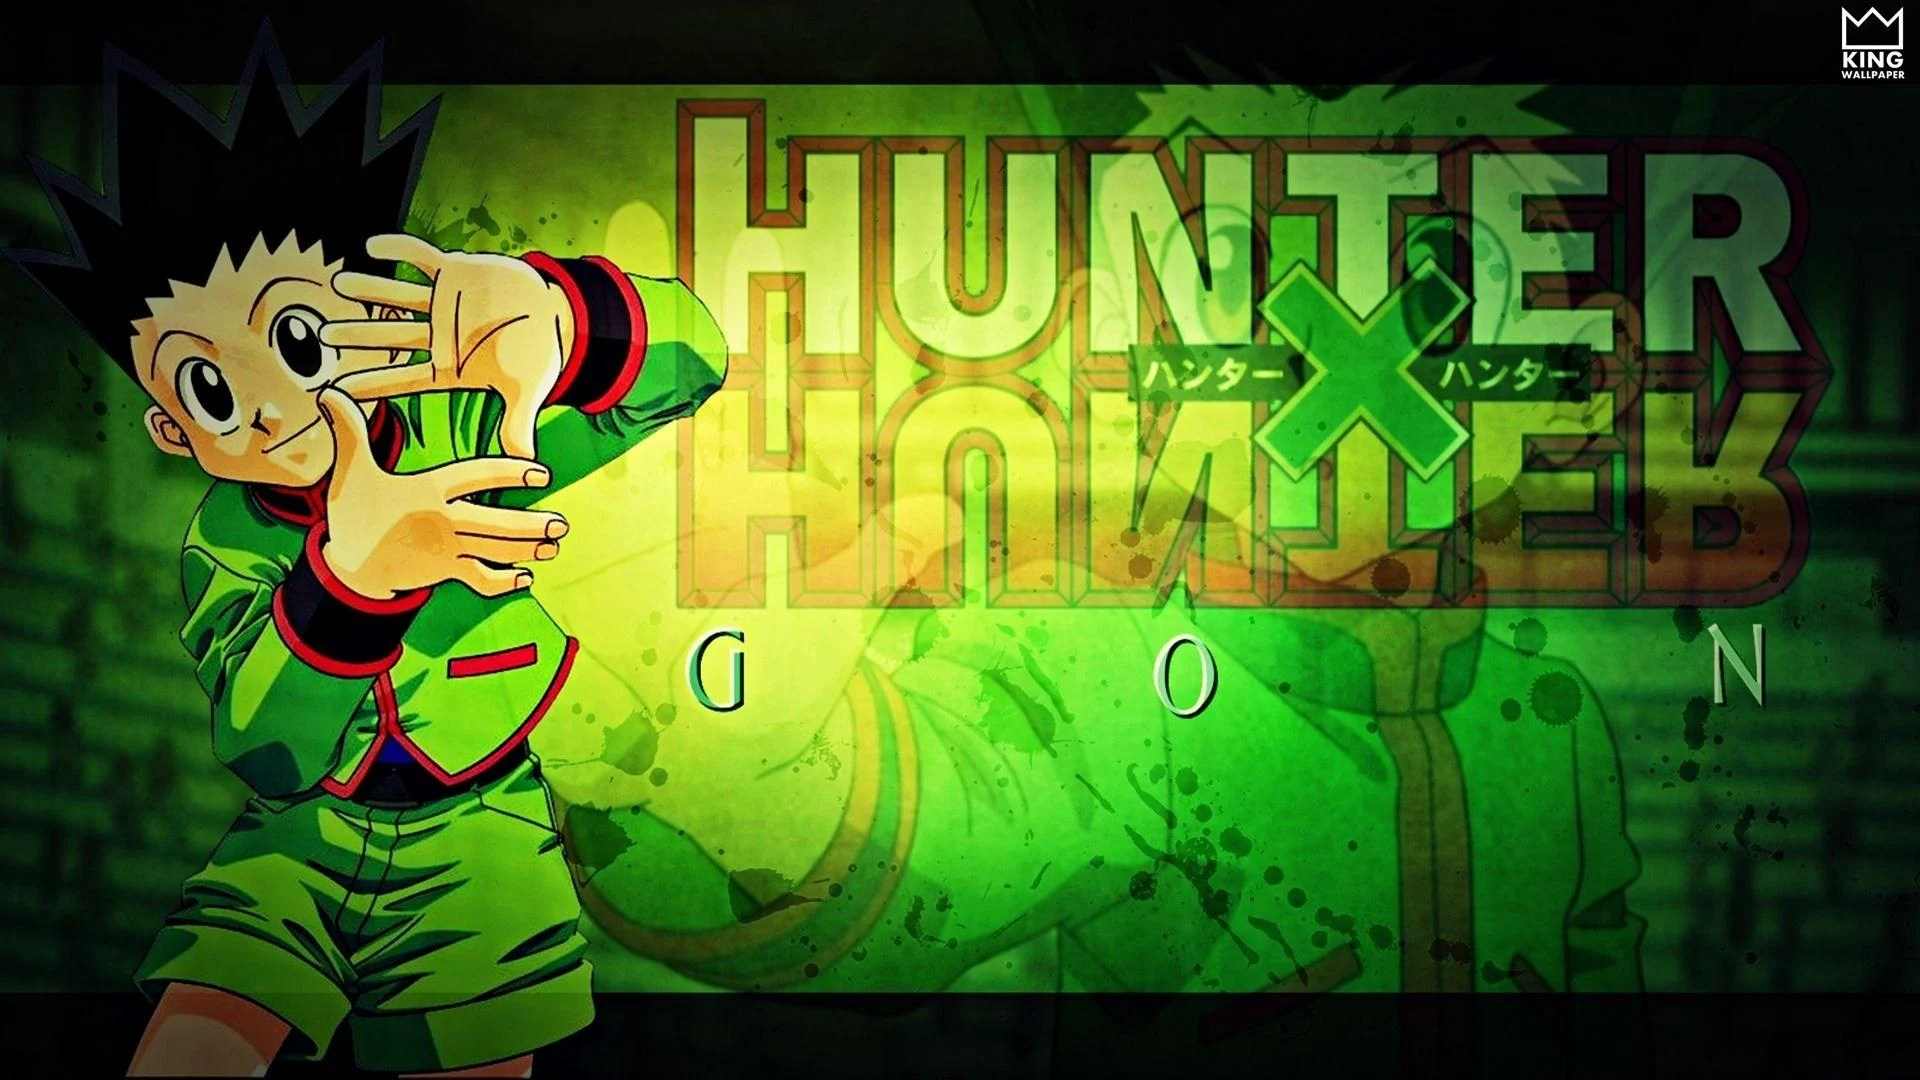 Search free hunter x hunter wallpapers on zedge and personalize your phone to suit you. Gon Freecss Wallpapers - Wallpaper Cave